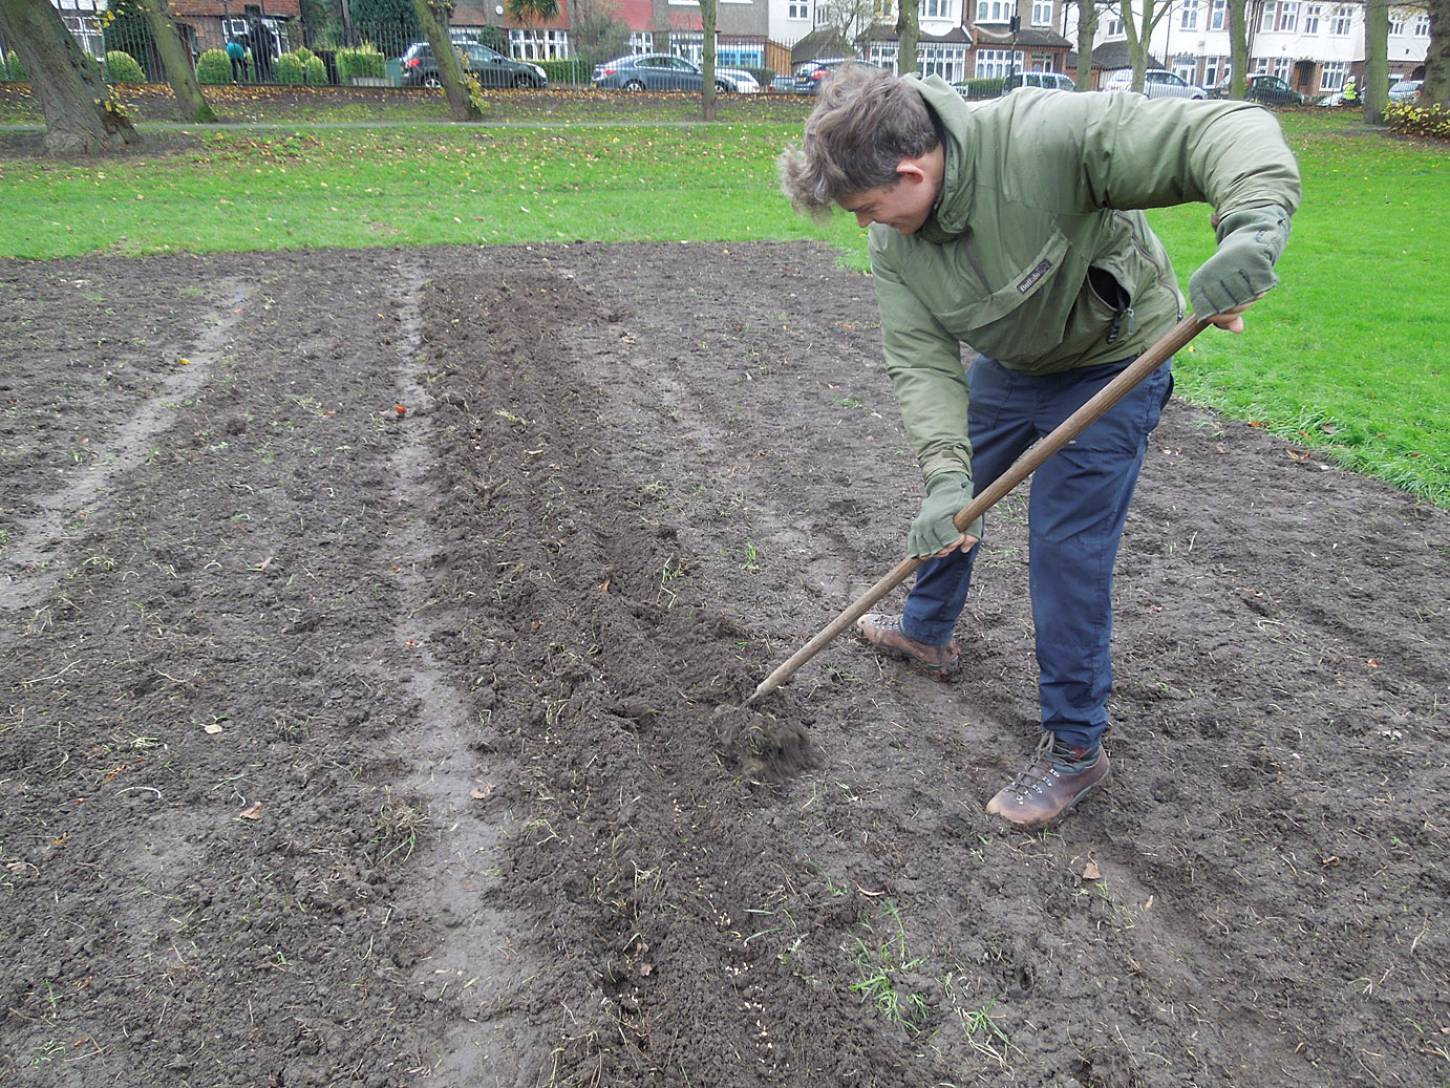 Day 3 sowing on Ruskin Park, putting in Blue Cone Rivet with Mattew Robinson from <a href='http://www.fortyhallfarm.org.uk/' target=_blank>Forty Hall Farm</a> - 2:43pm&nbsp;30<sup>th</sup>&nbsp;Nov.&nbsp;'15